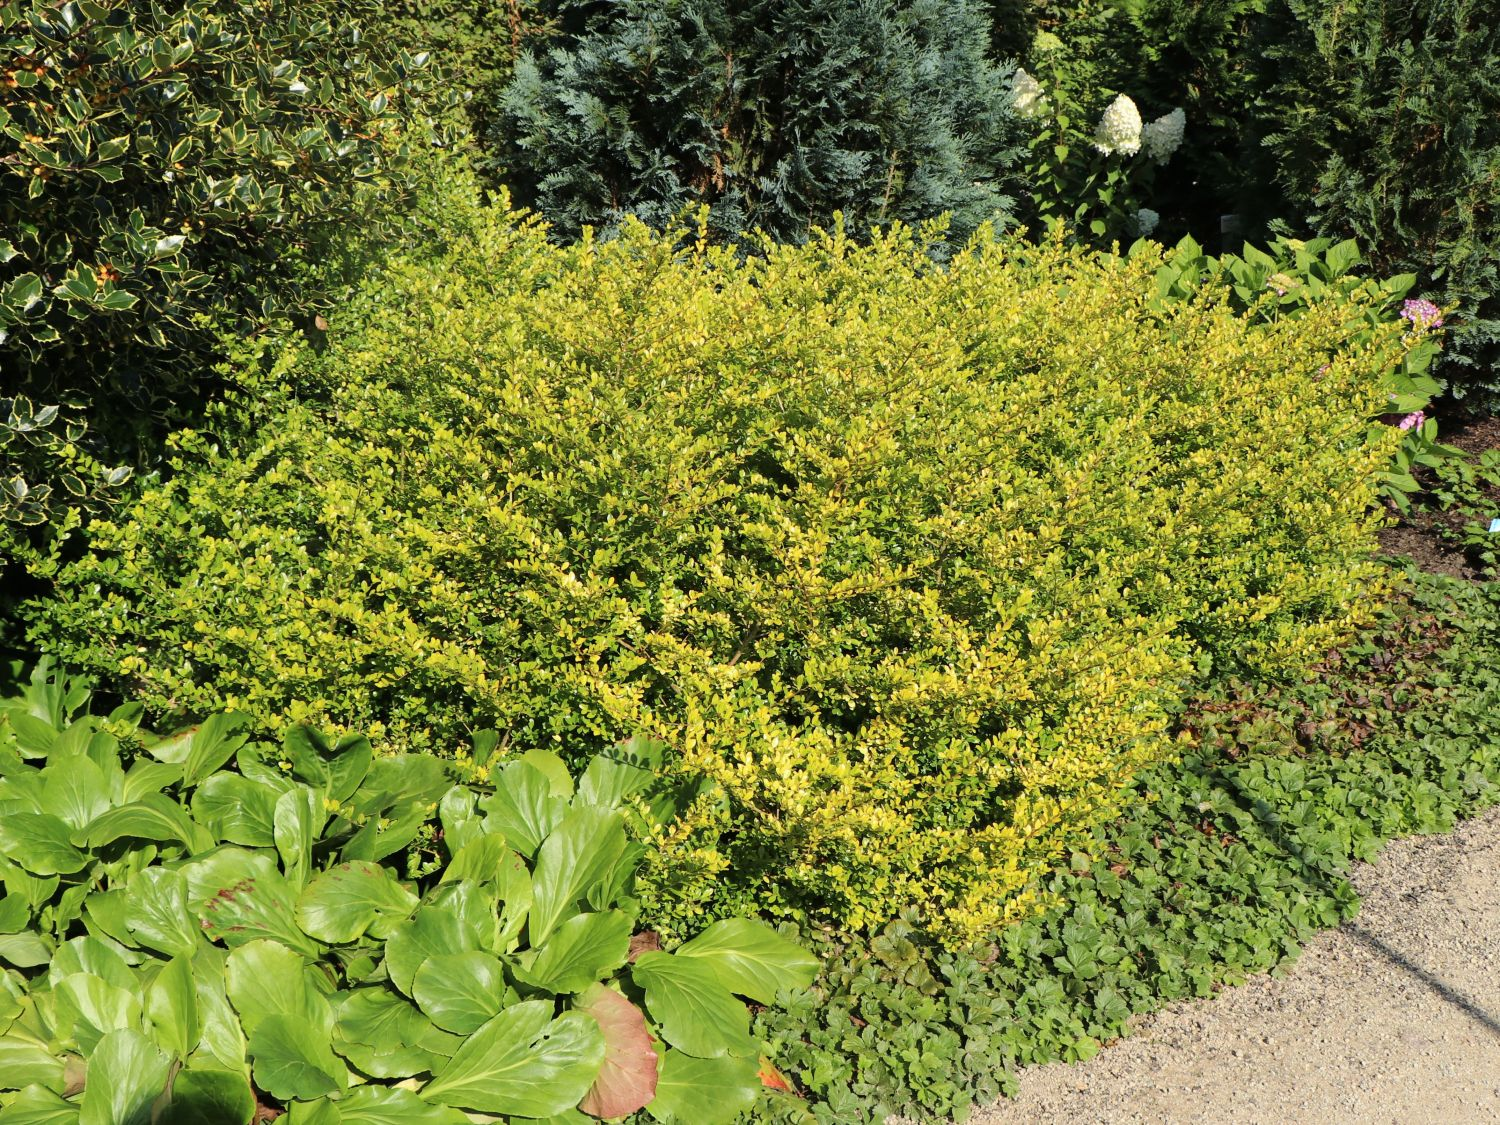 Ilex Crenata Golden Gem gelber bergilex 'golden gem' / gelbe japanstechpalme 'golden